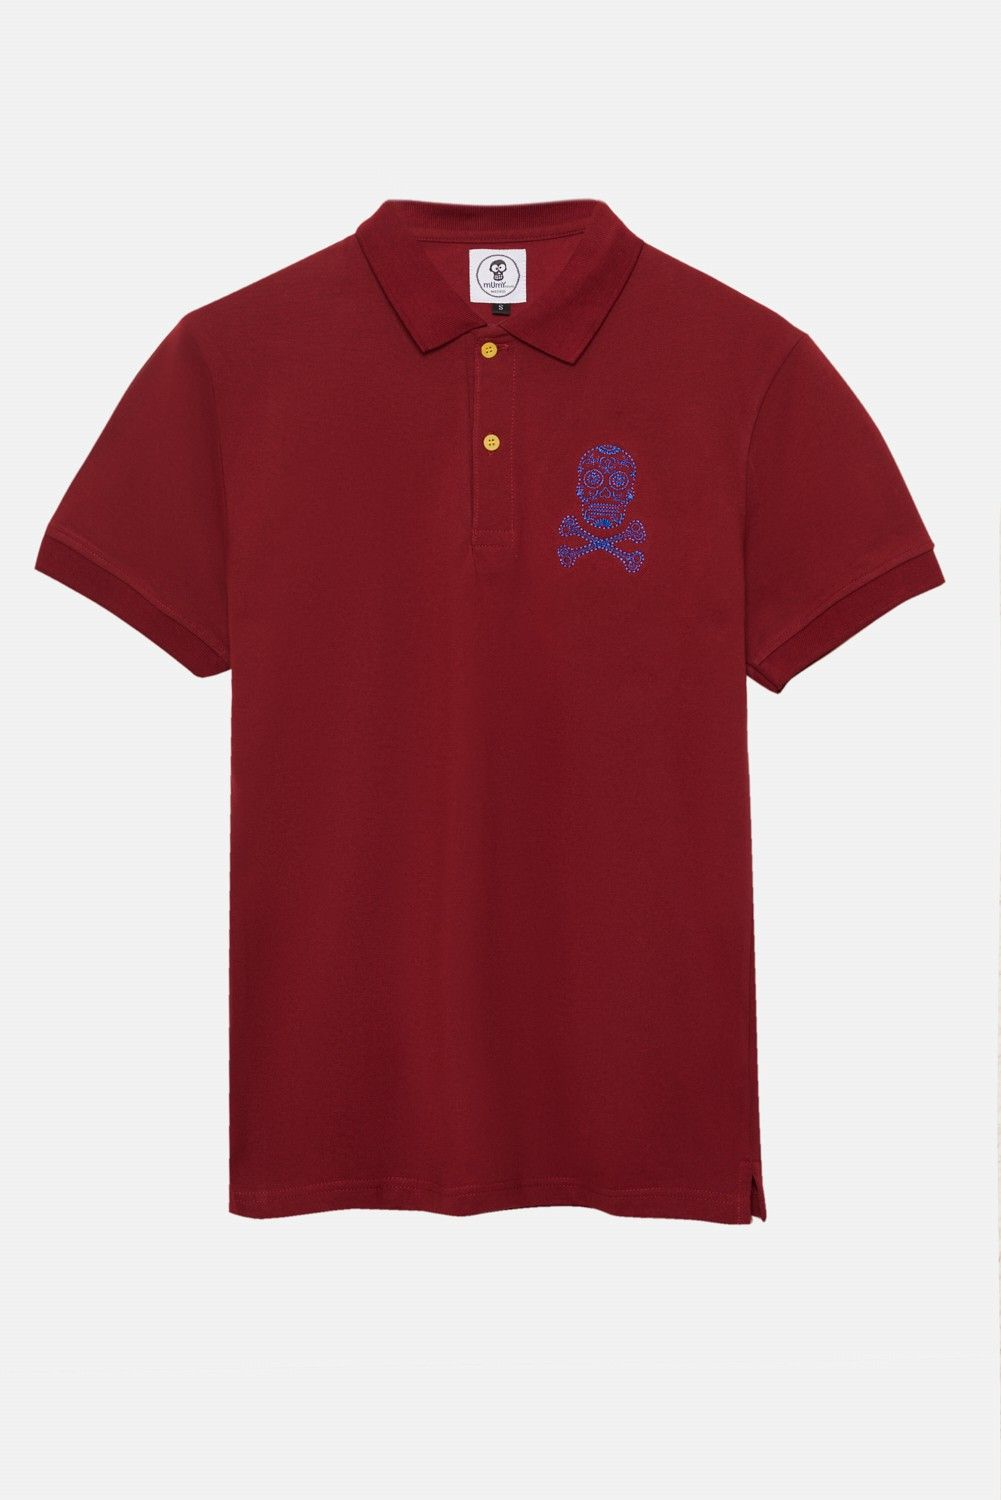 ADULT´S EMBROIDERED POLO NEW KATRINA IN RED